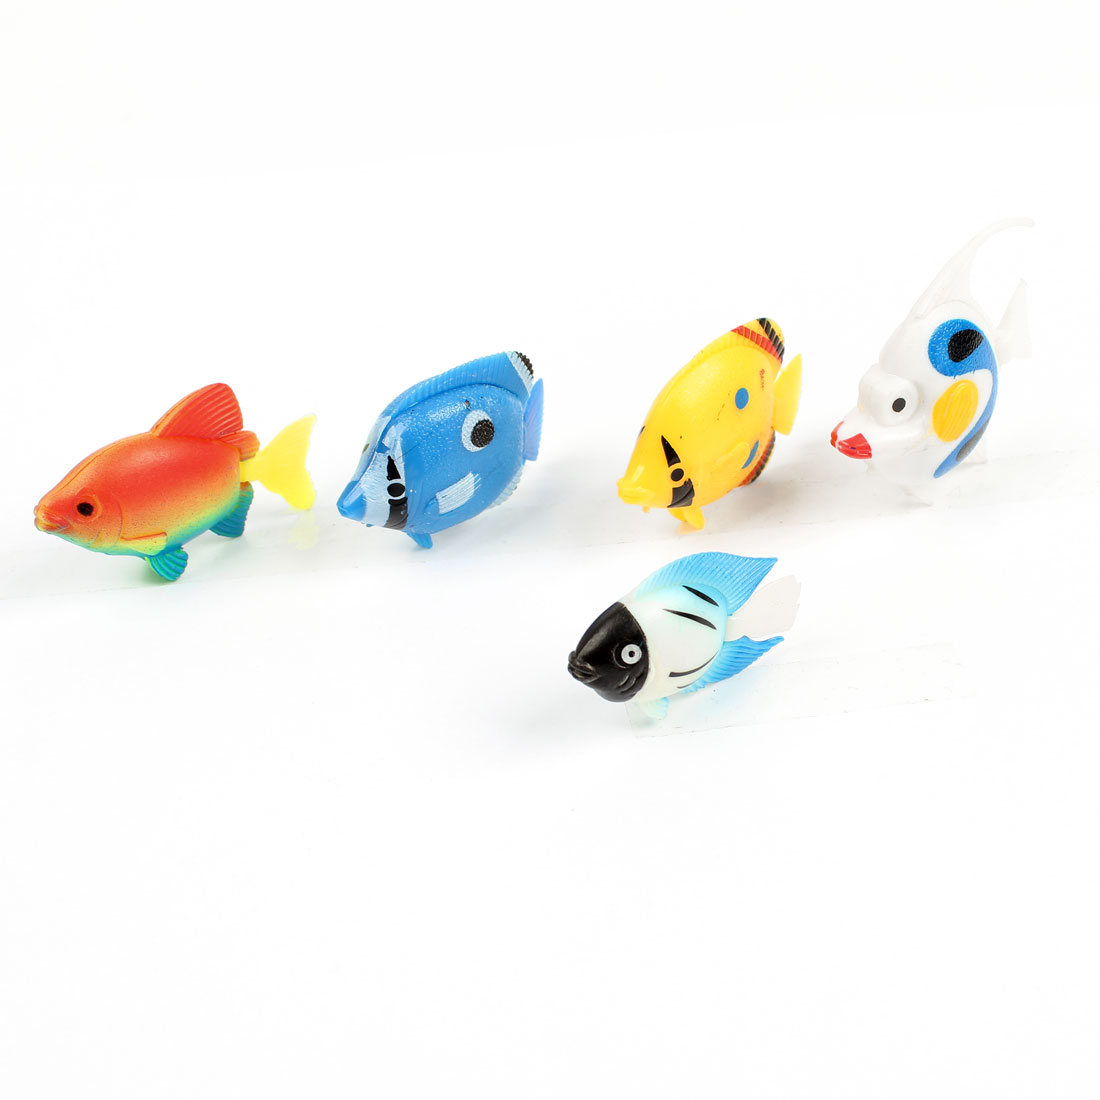 Aquarium Fish Tank Yellow Blue White Plastic Swing Tail Floating Fish Ornament 5 Pcs